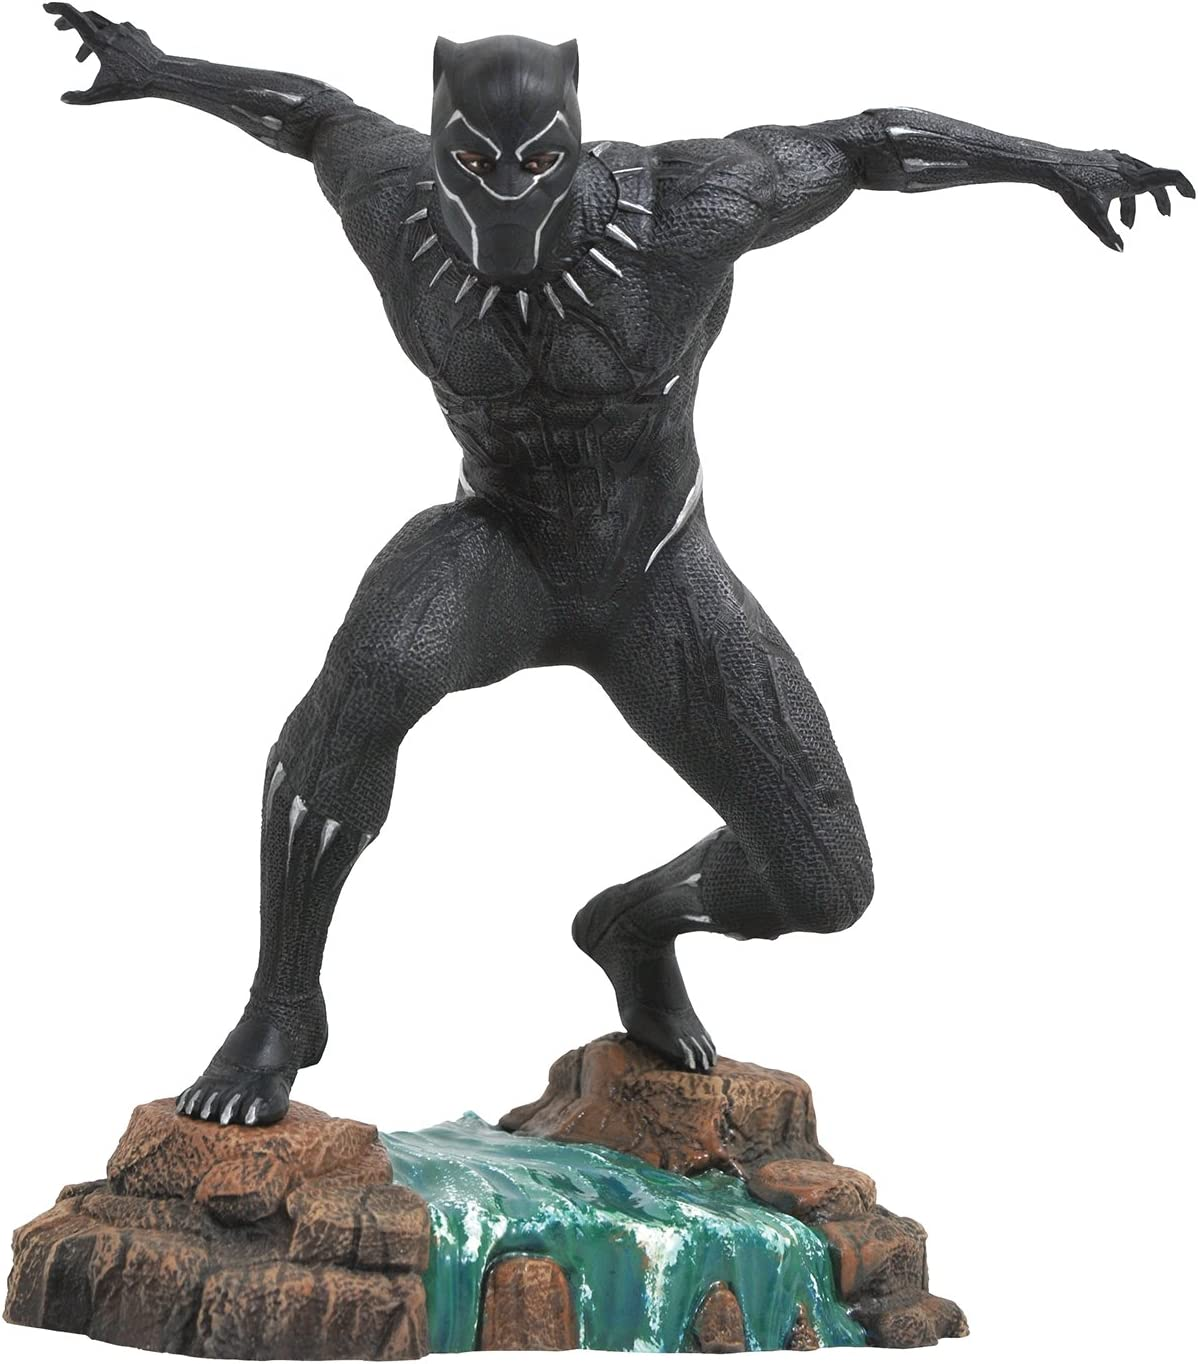 Black Panther Movie Pvc Vinyl Figure Diamond Select Toys Marvel Gallery